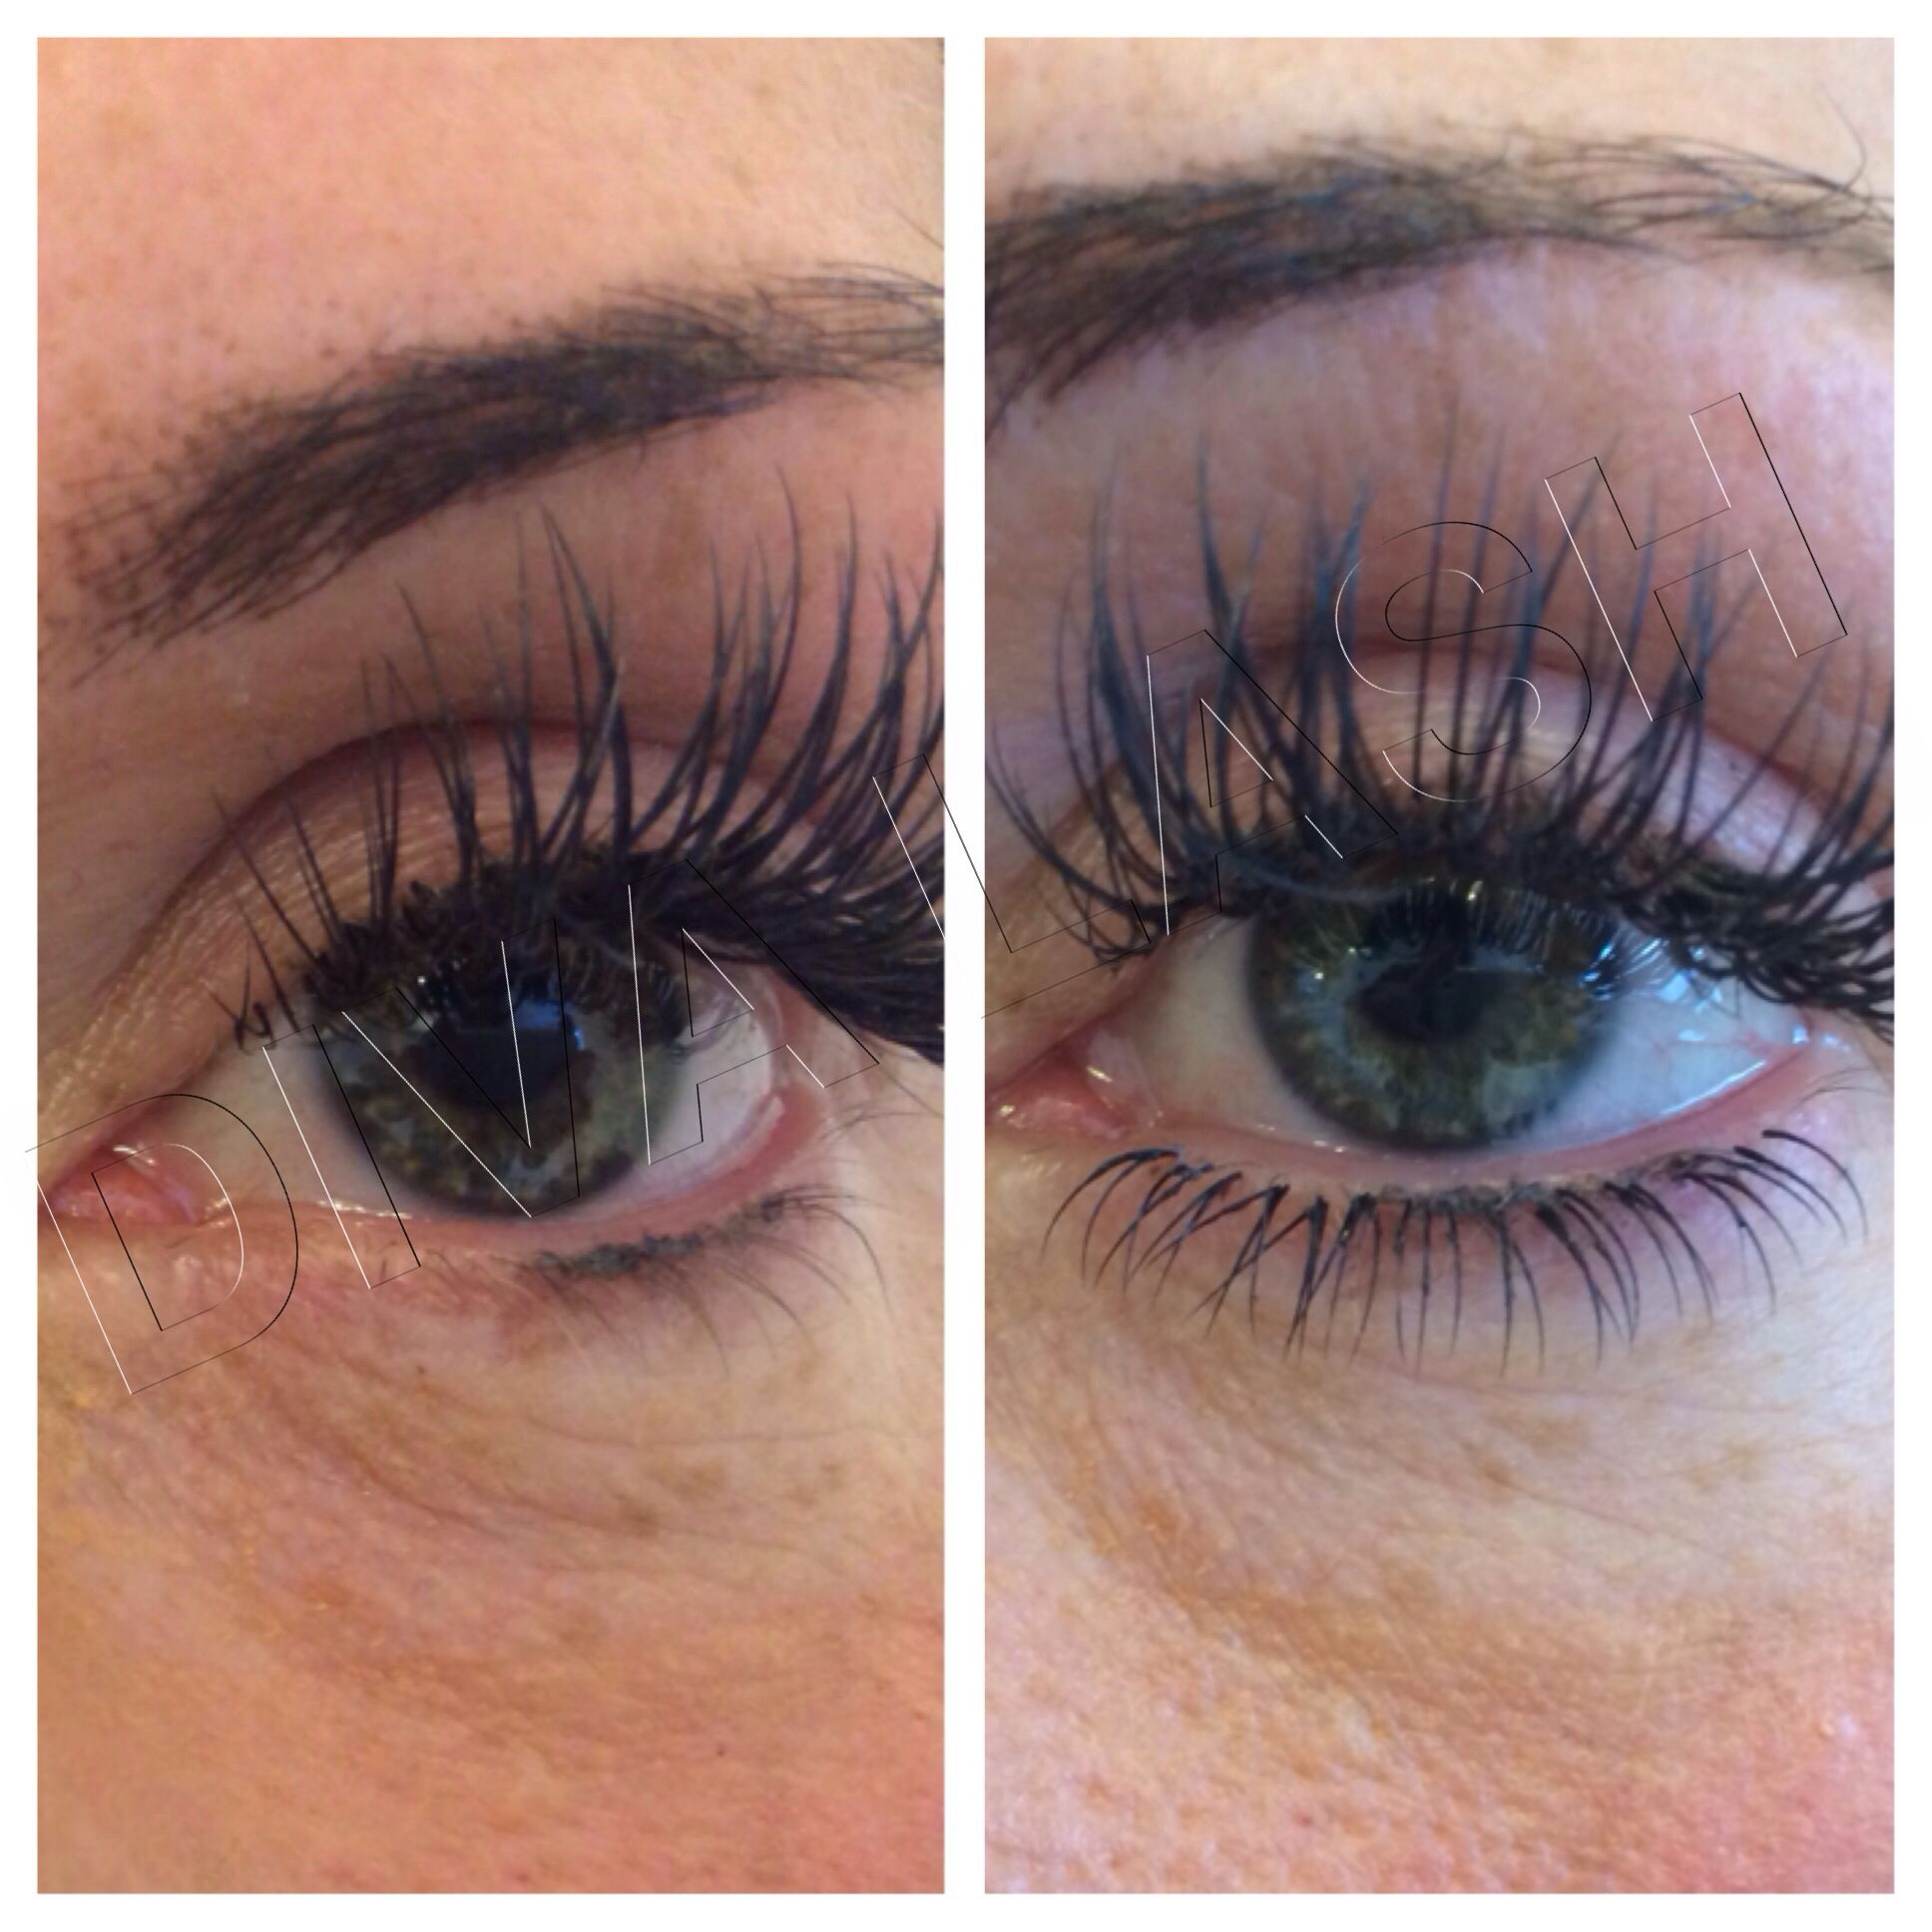 e16b4d0ee91 LOWER EYELASH EXTENSIONS to complete the look, applied by Master lash Tech  at Diva Lash.